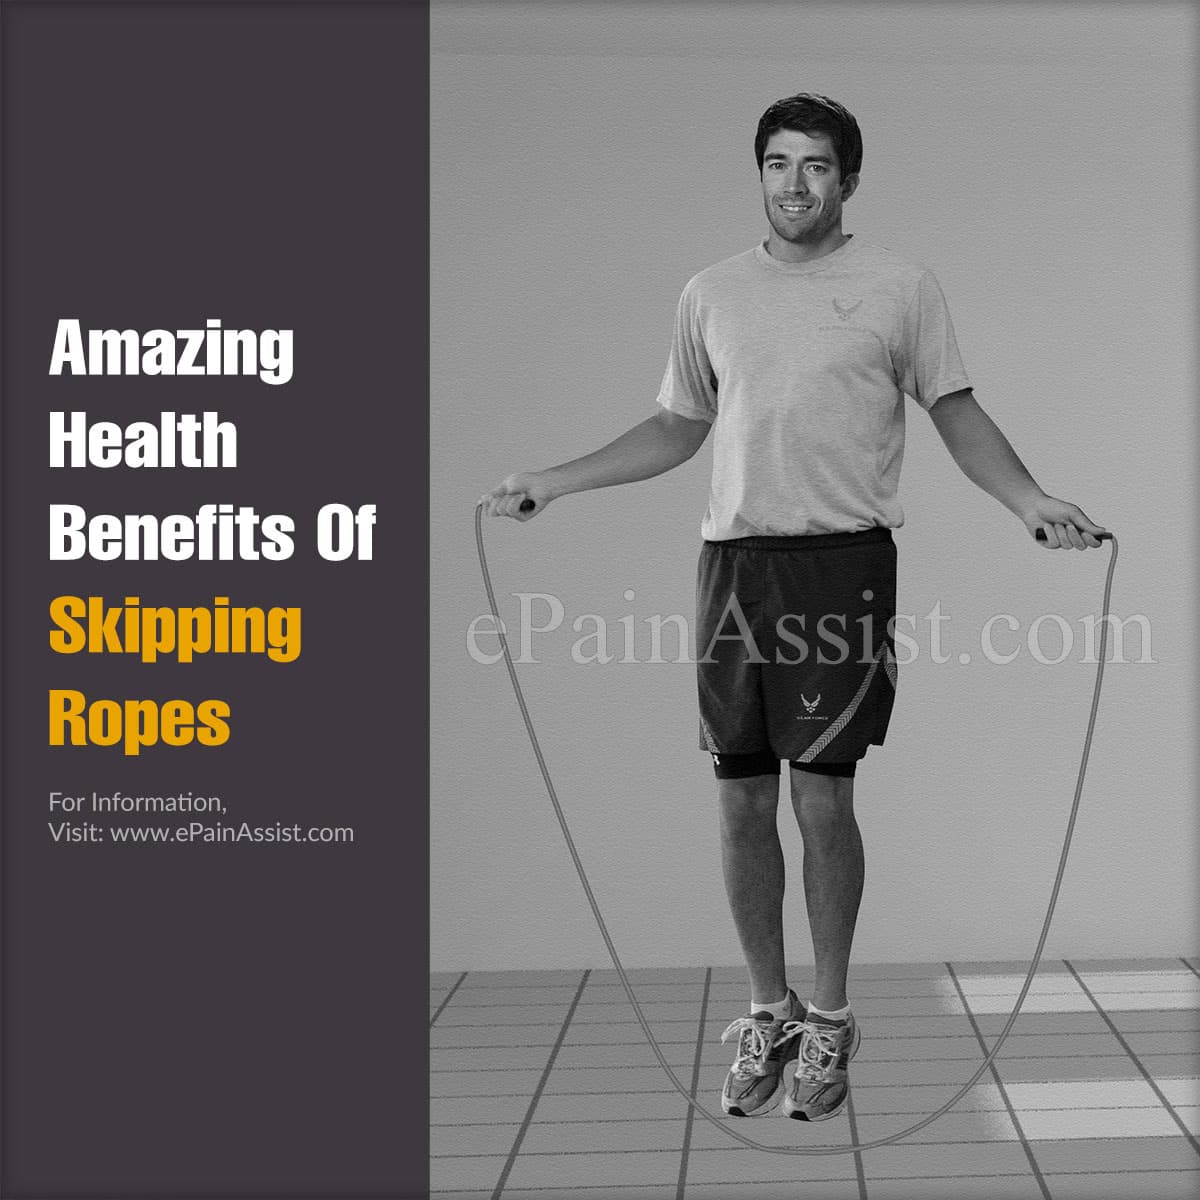 Amazing Health Benefits of Skipping Ropes